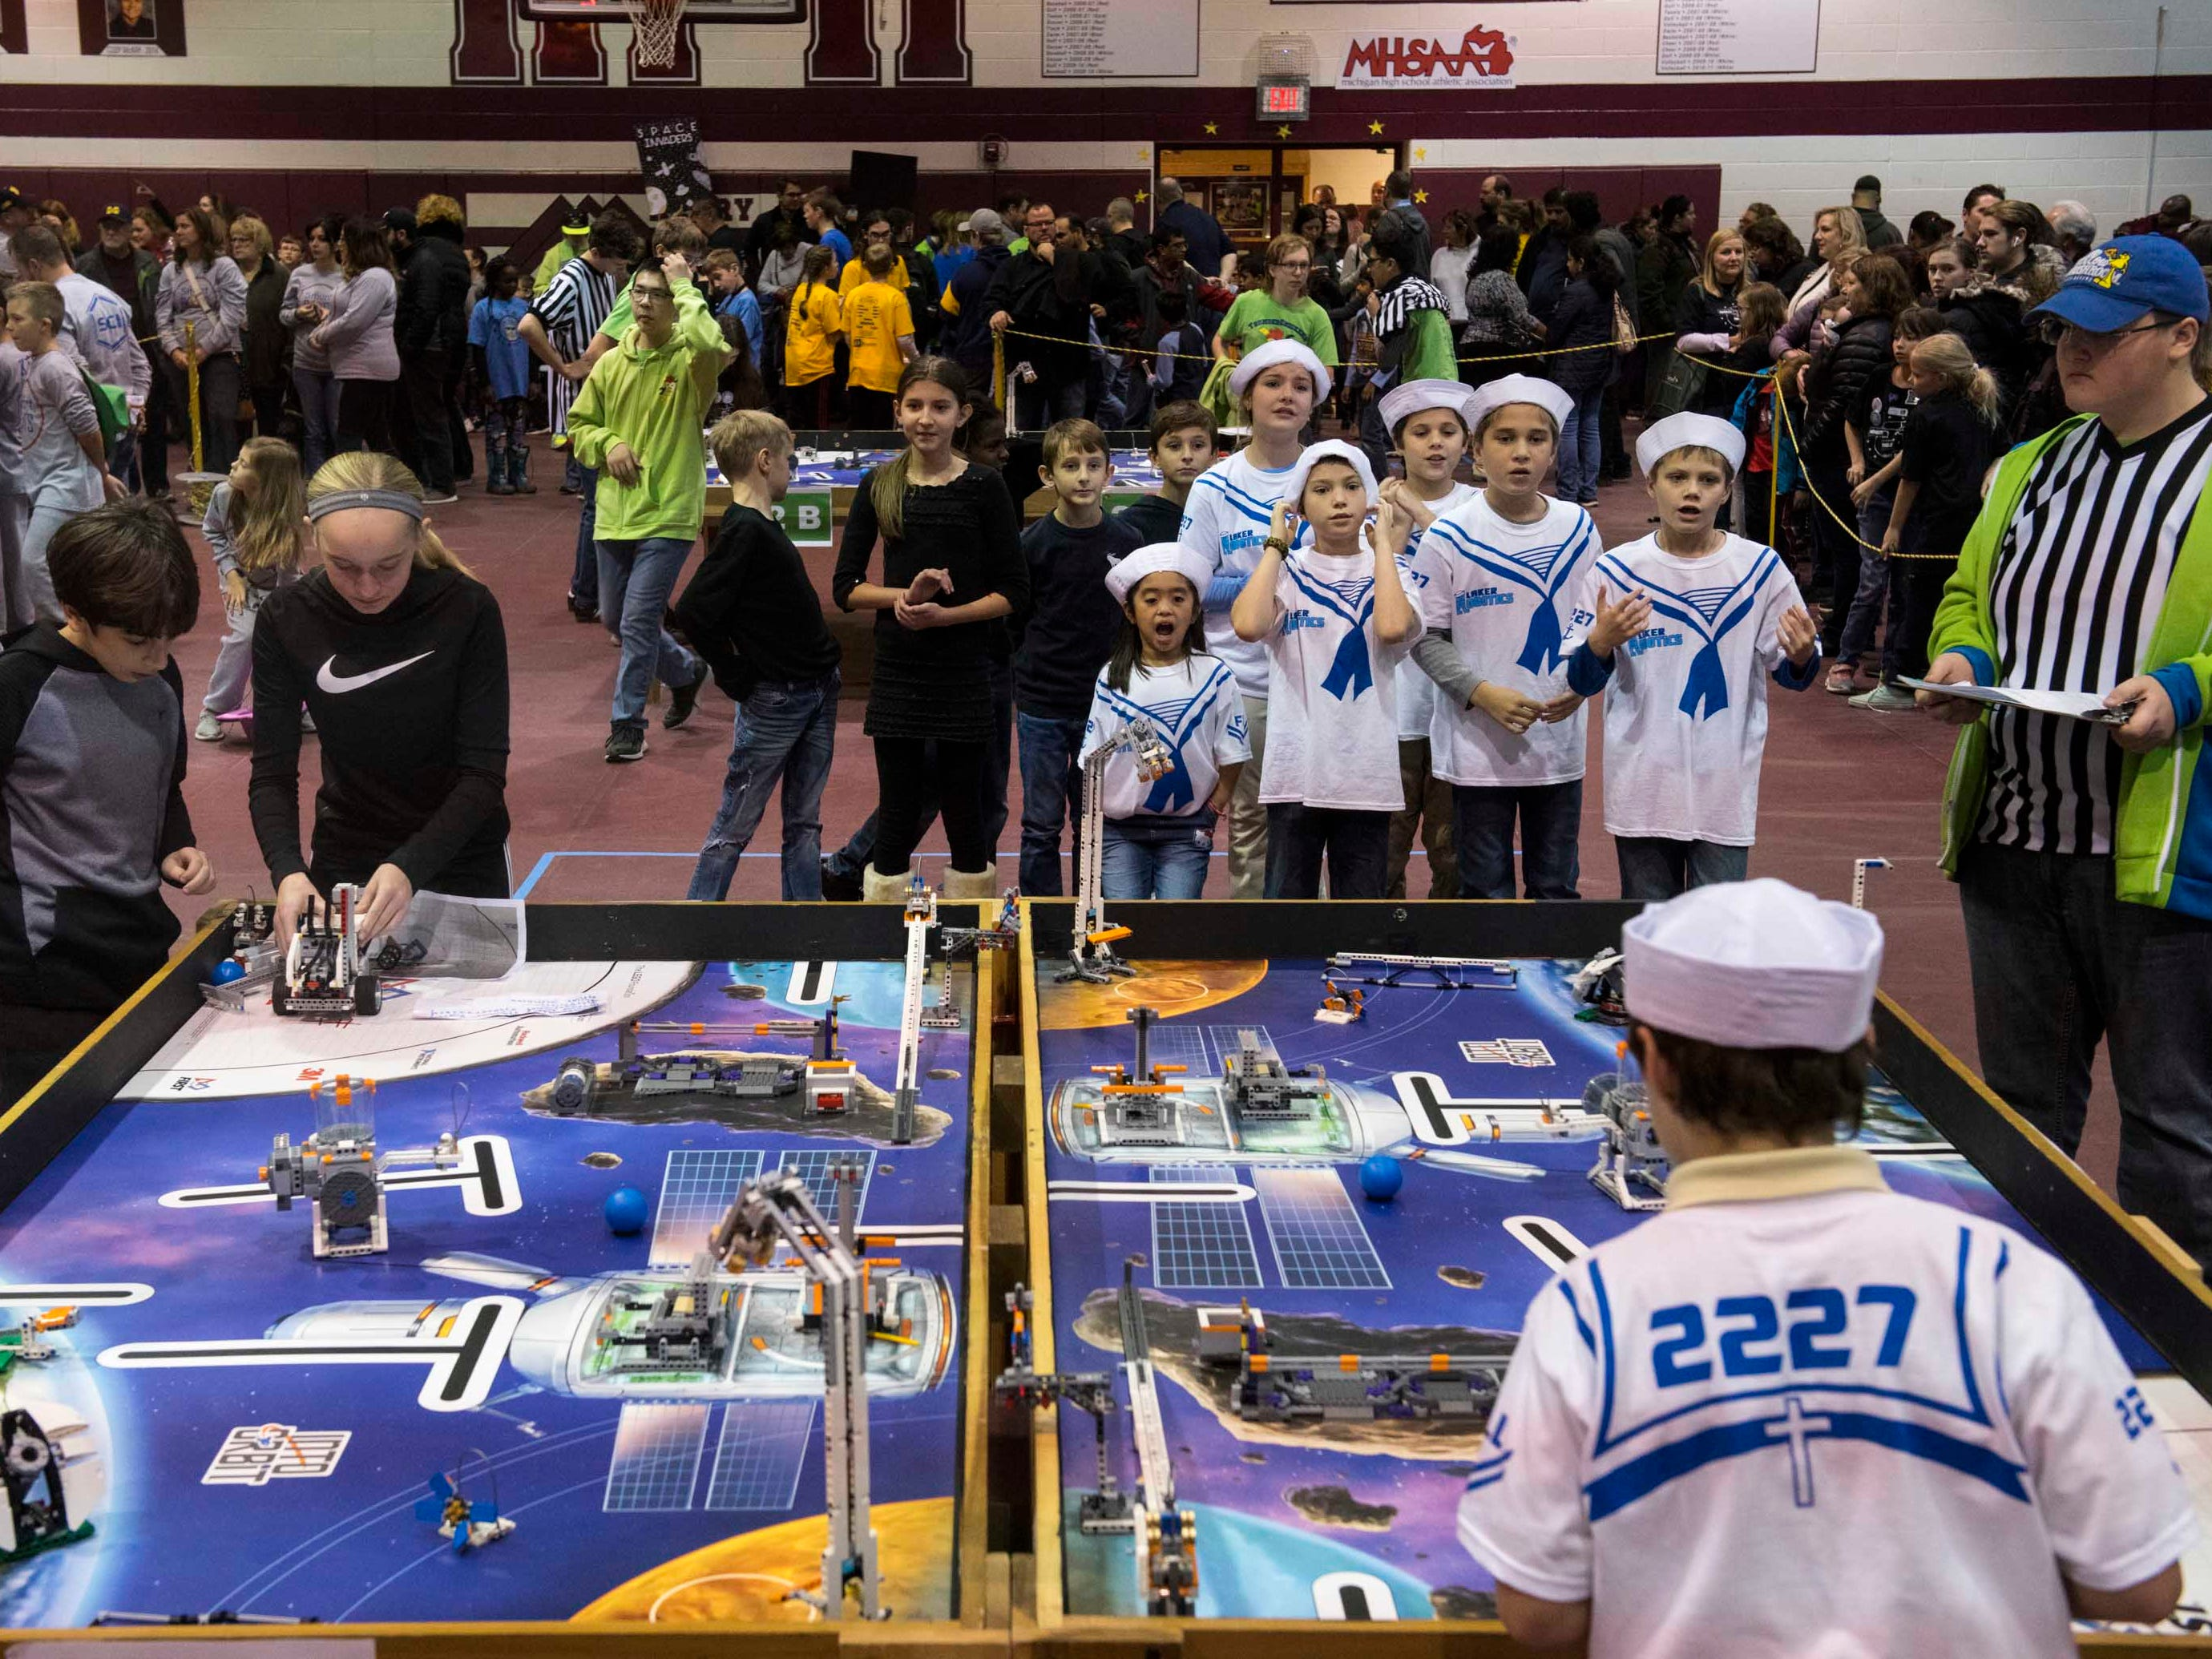 Members of the Lakes Robotics team of Our Lady of Lakes Catholic School of Waterford cheer for their teammates as they compete at ThunderQuest.